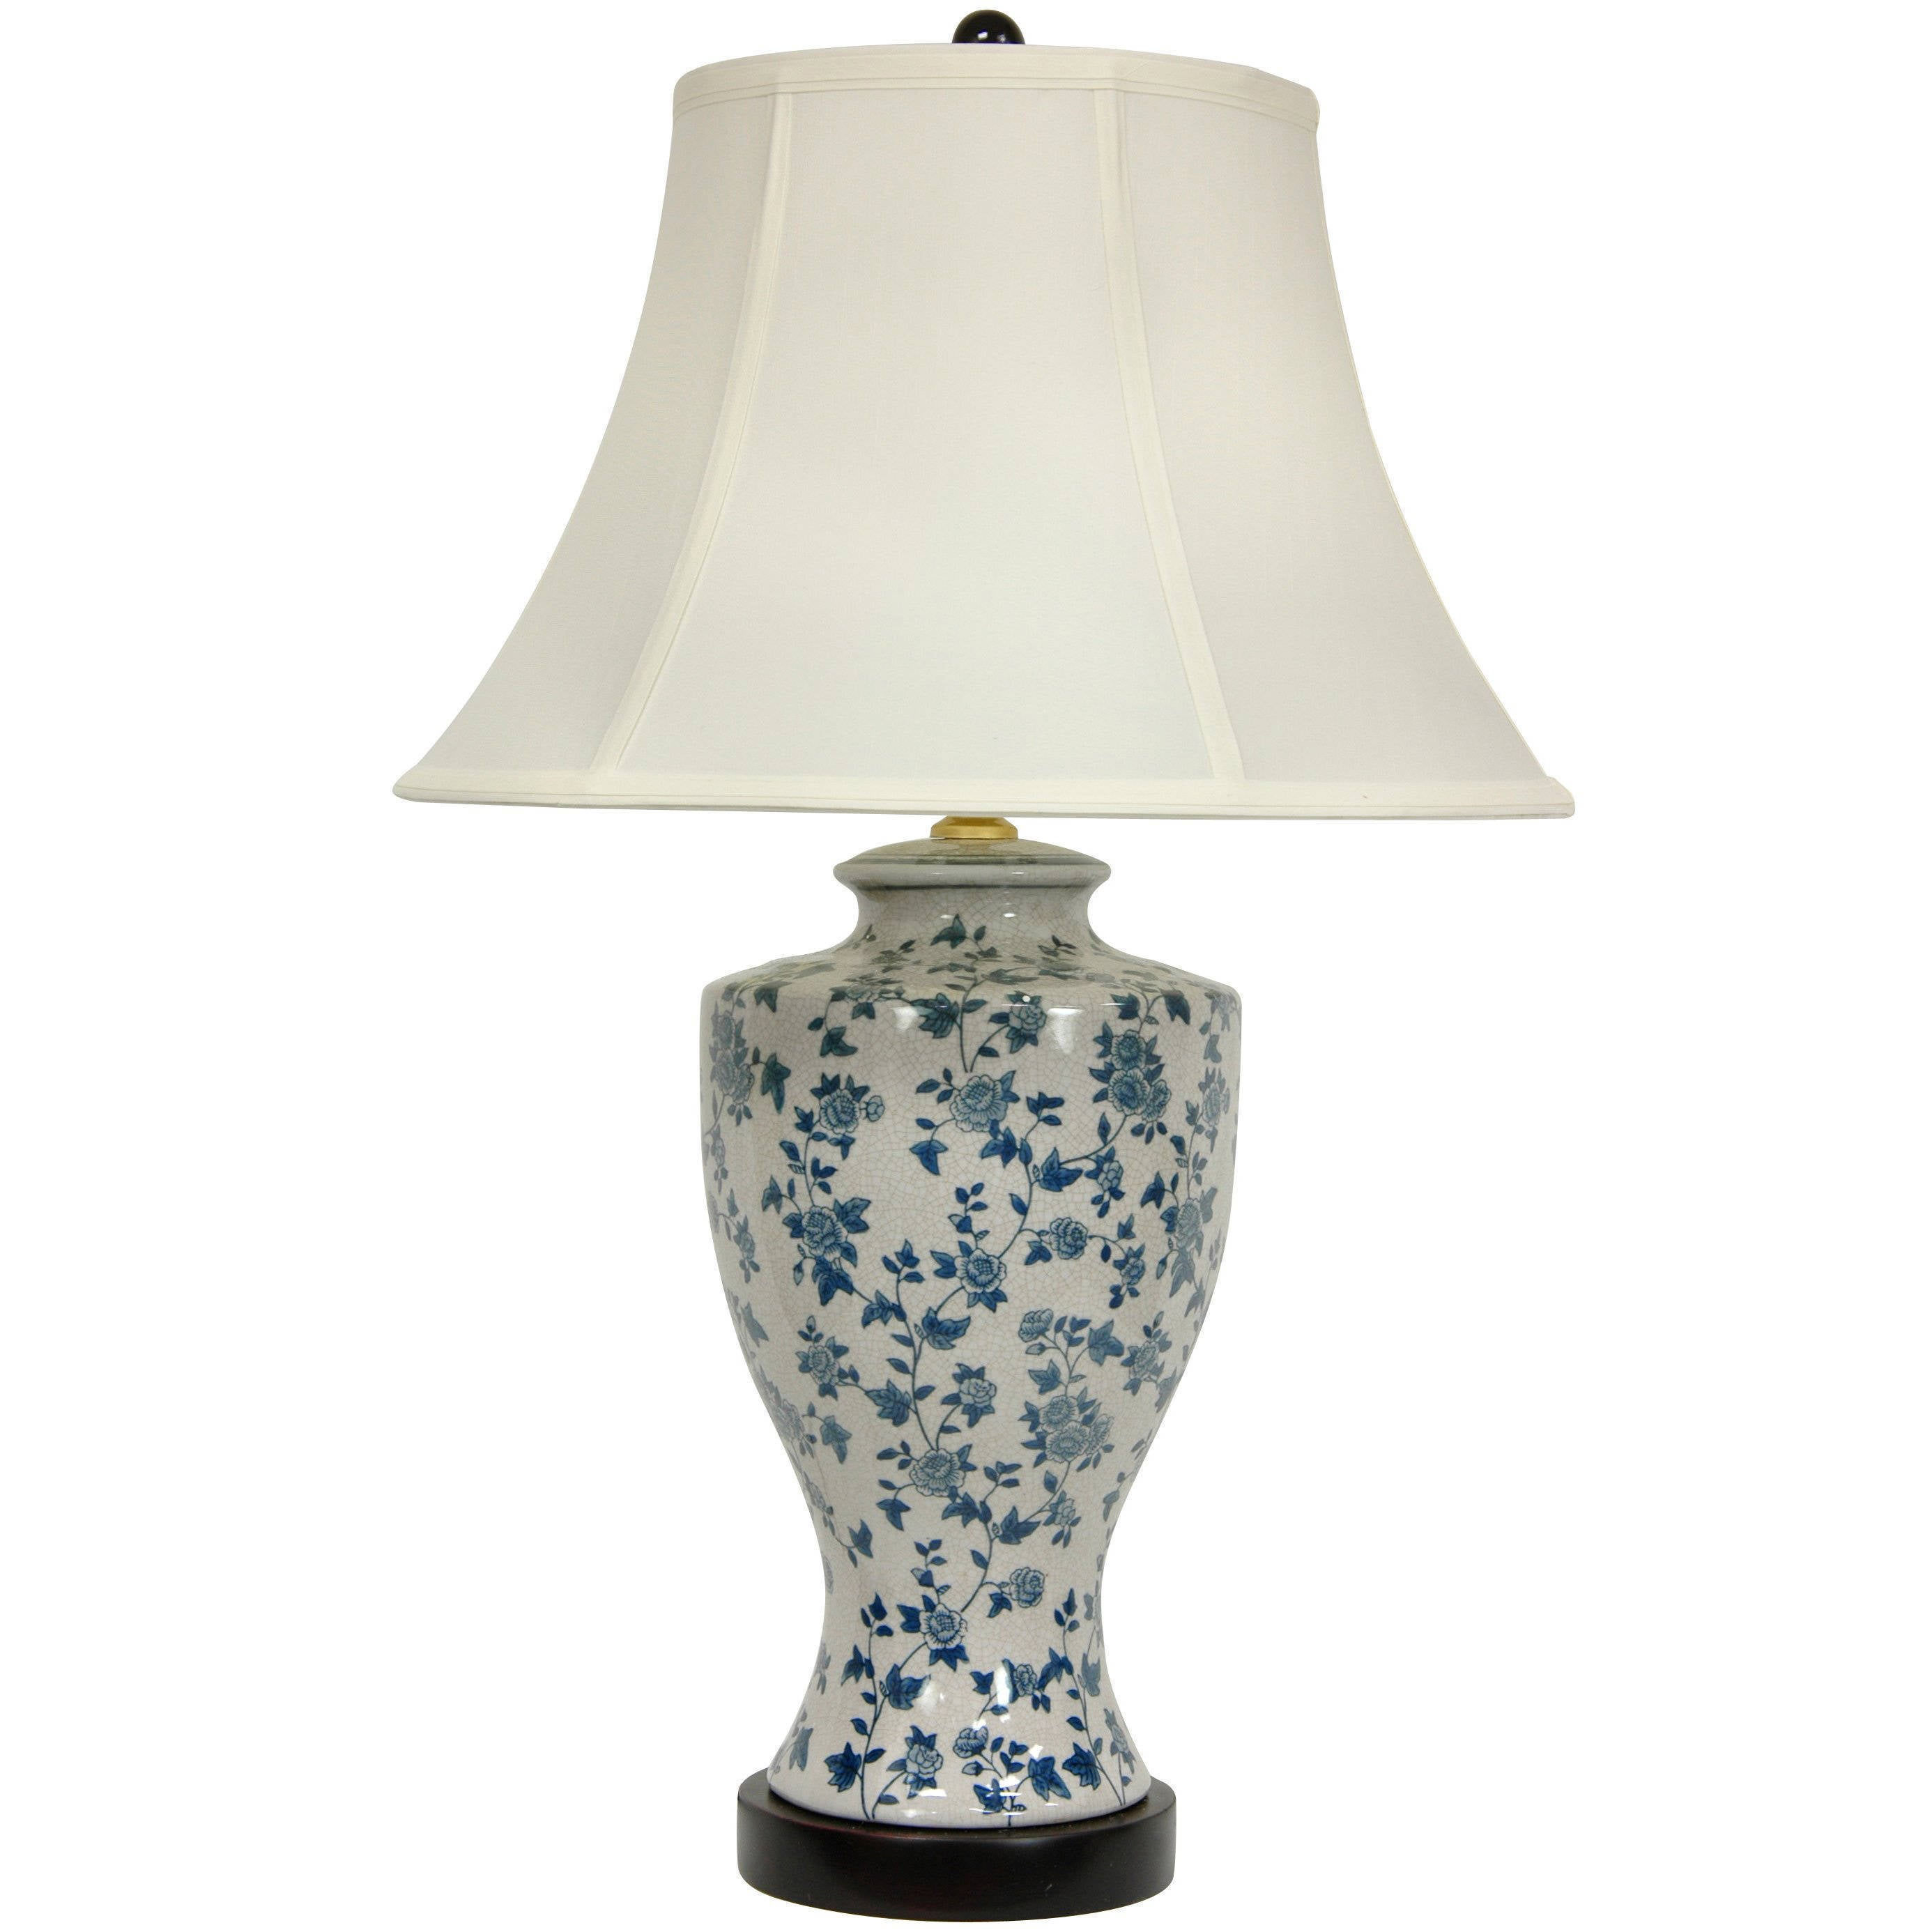 Shop Handmade Blue And White Flower Vine Lamp With Off White Fabric